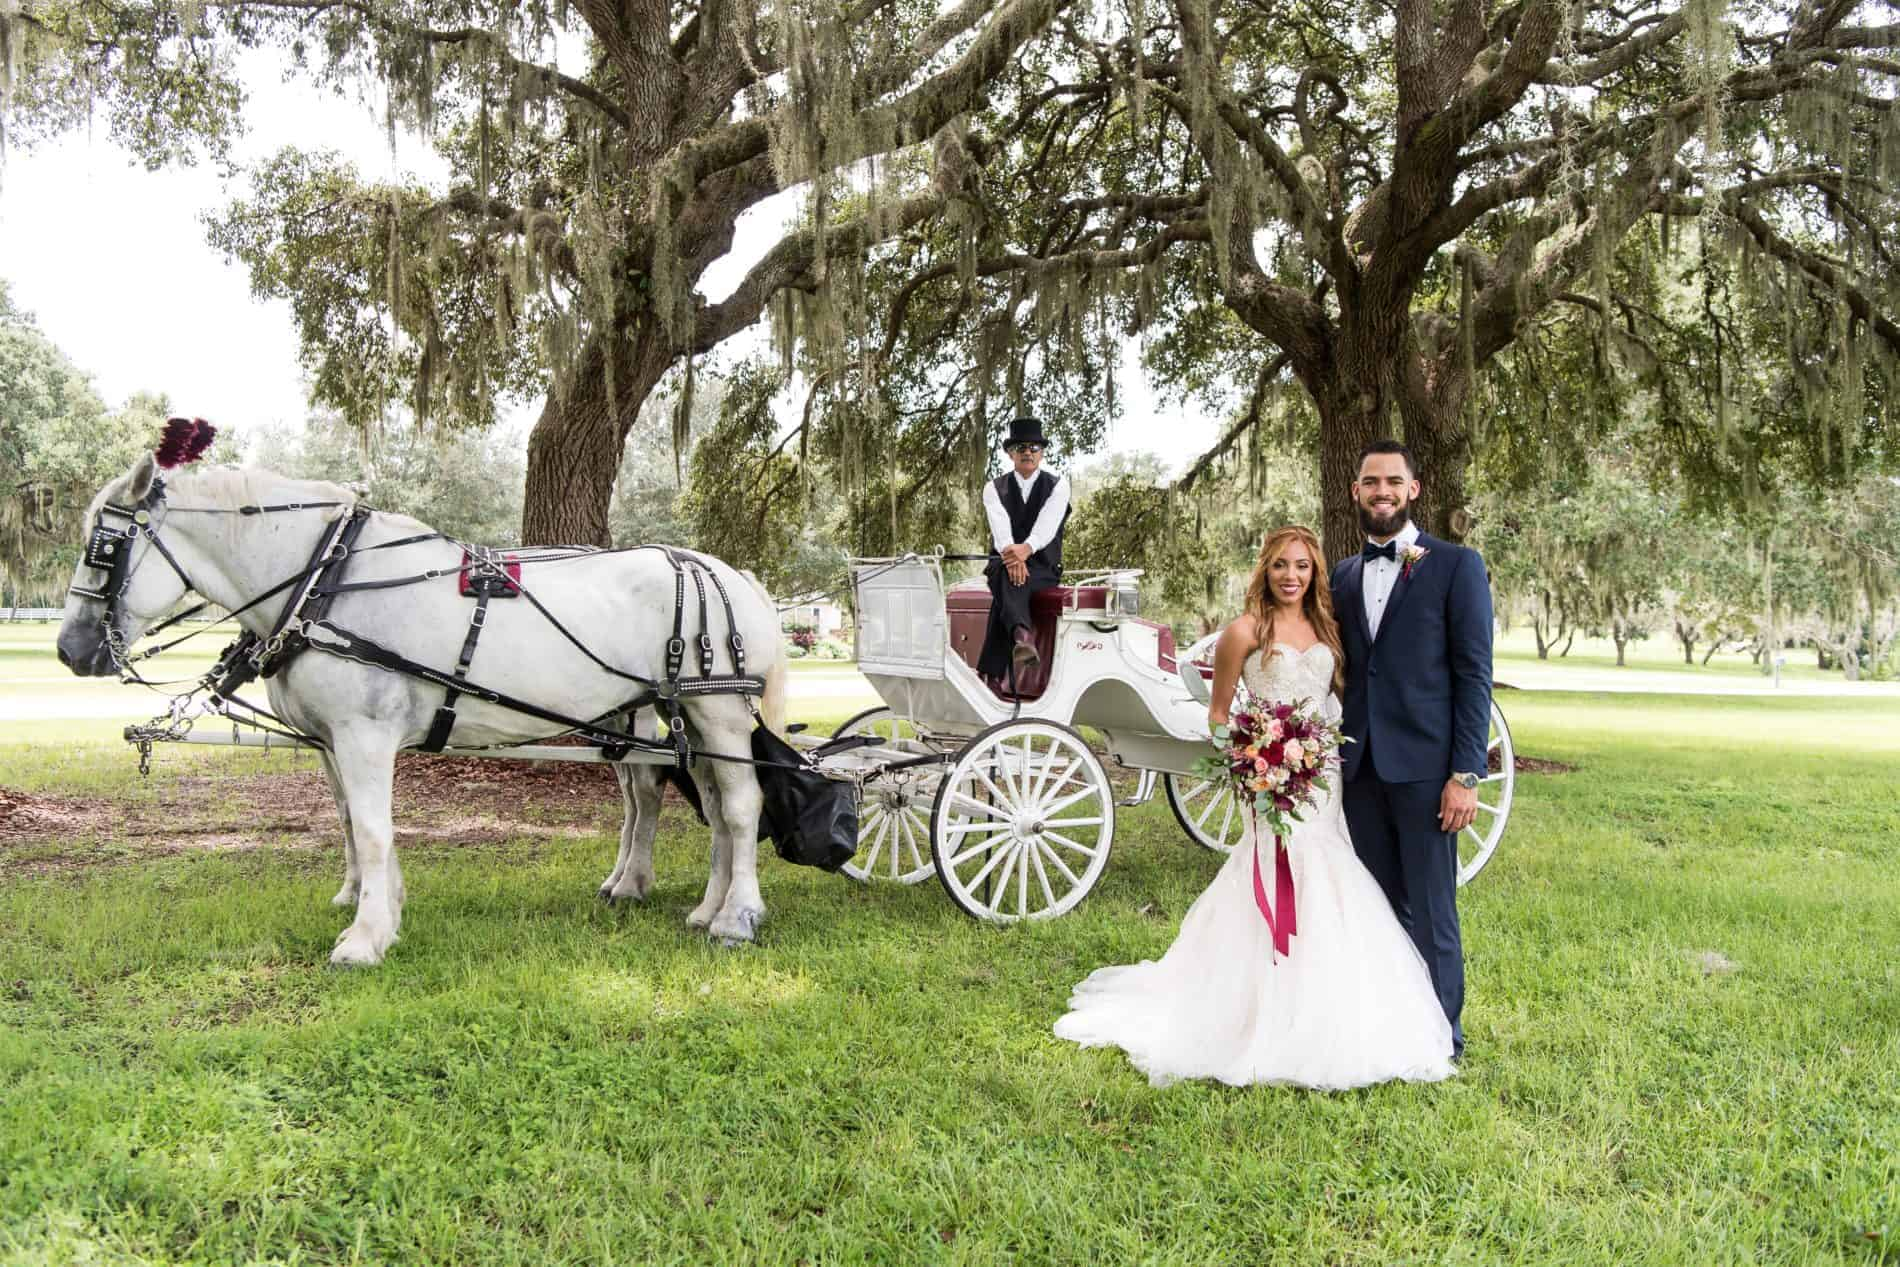 Wedding Honeyfunds can provide special touches like a horse drawn carriage